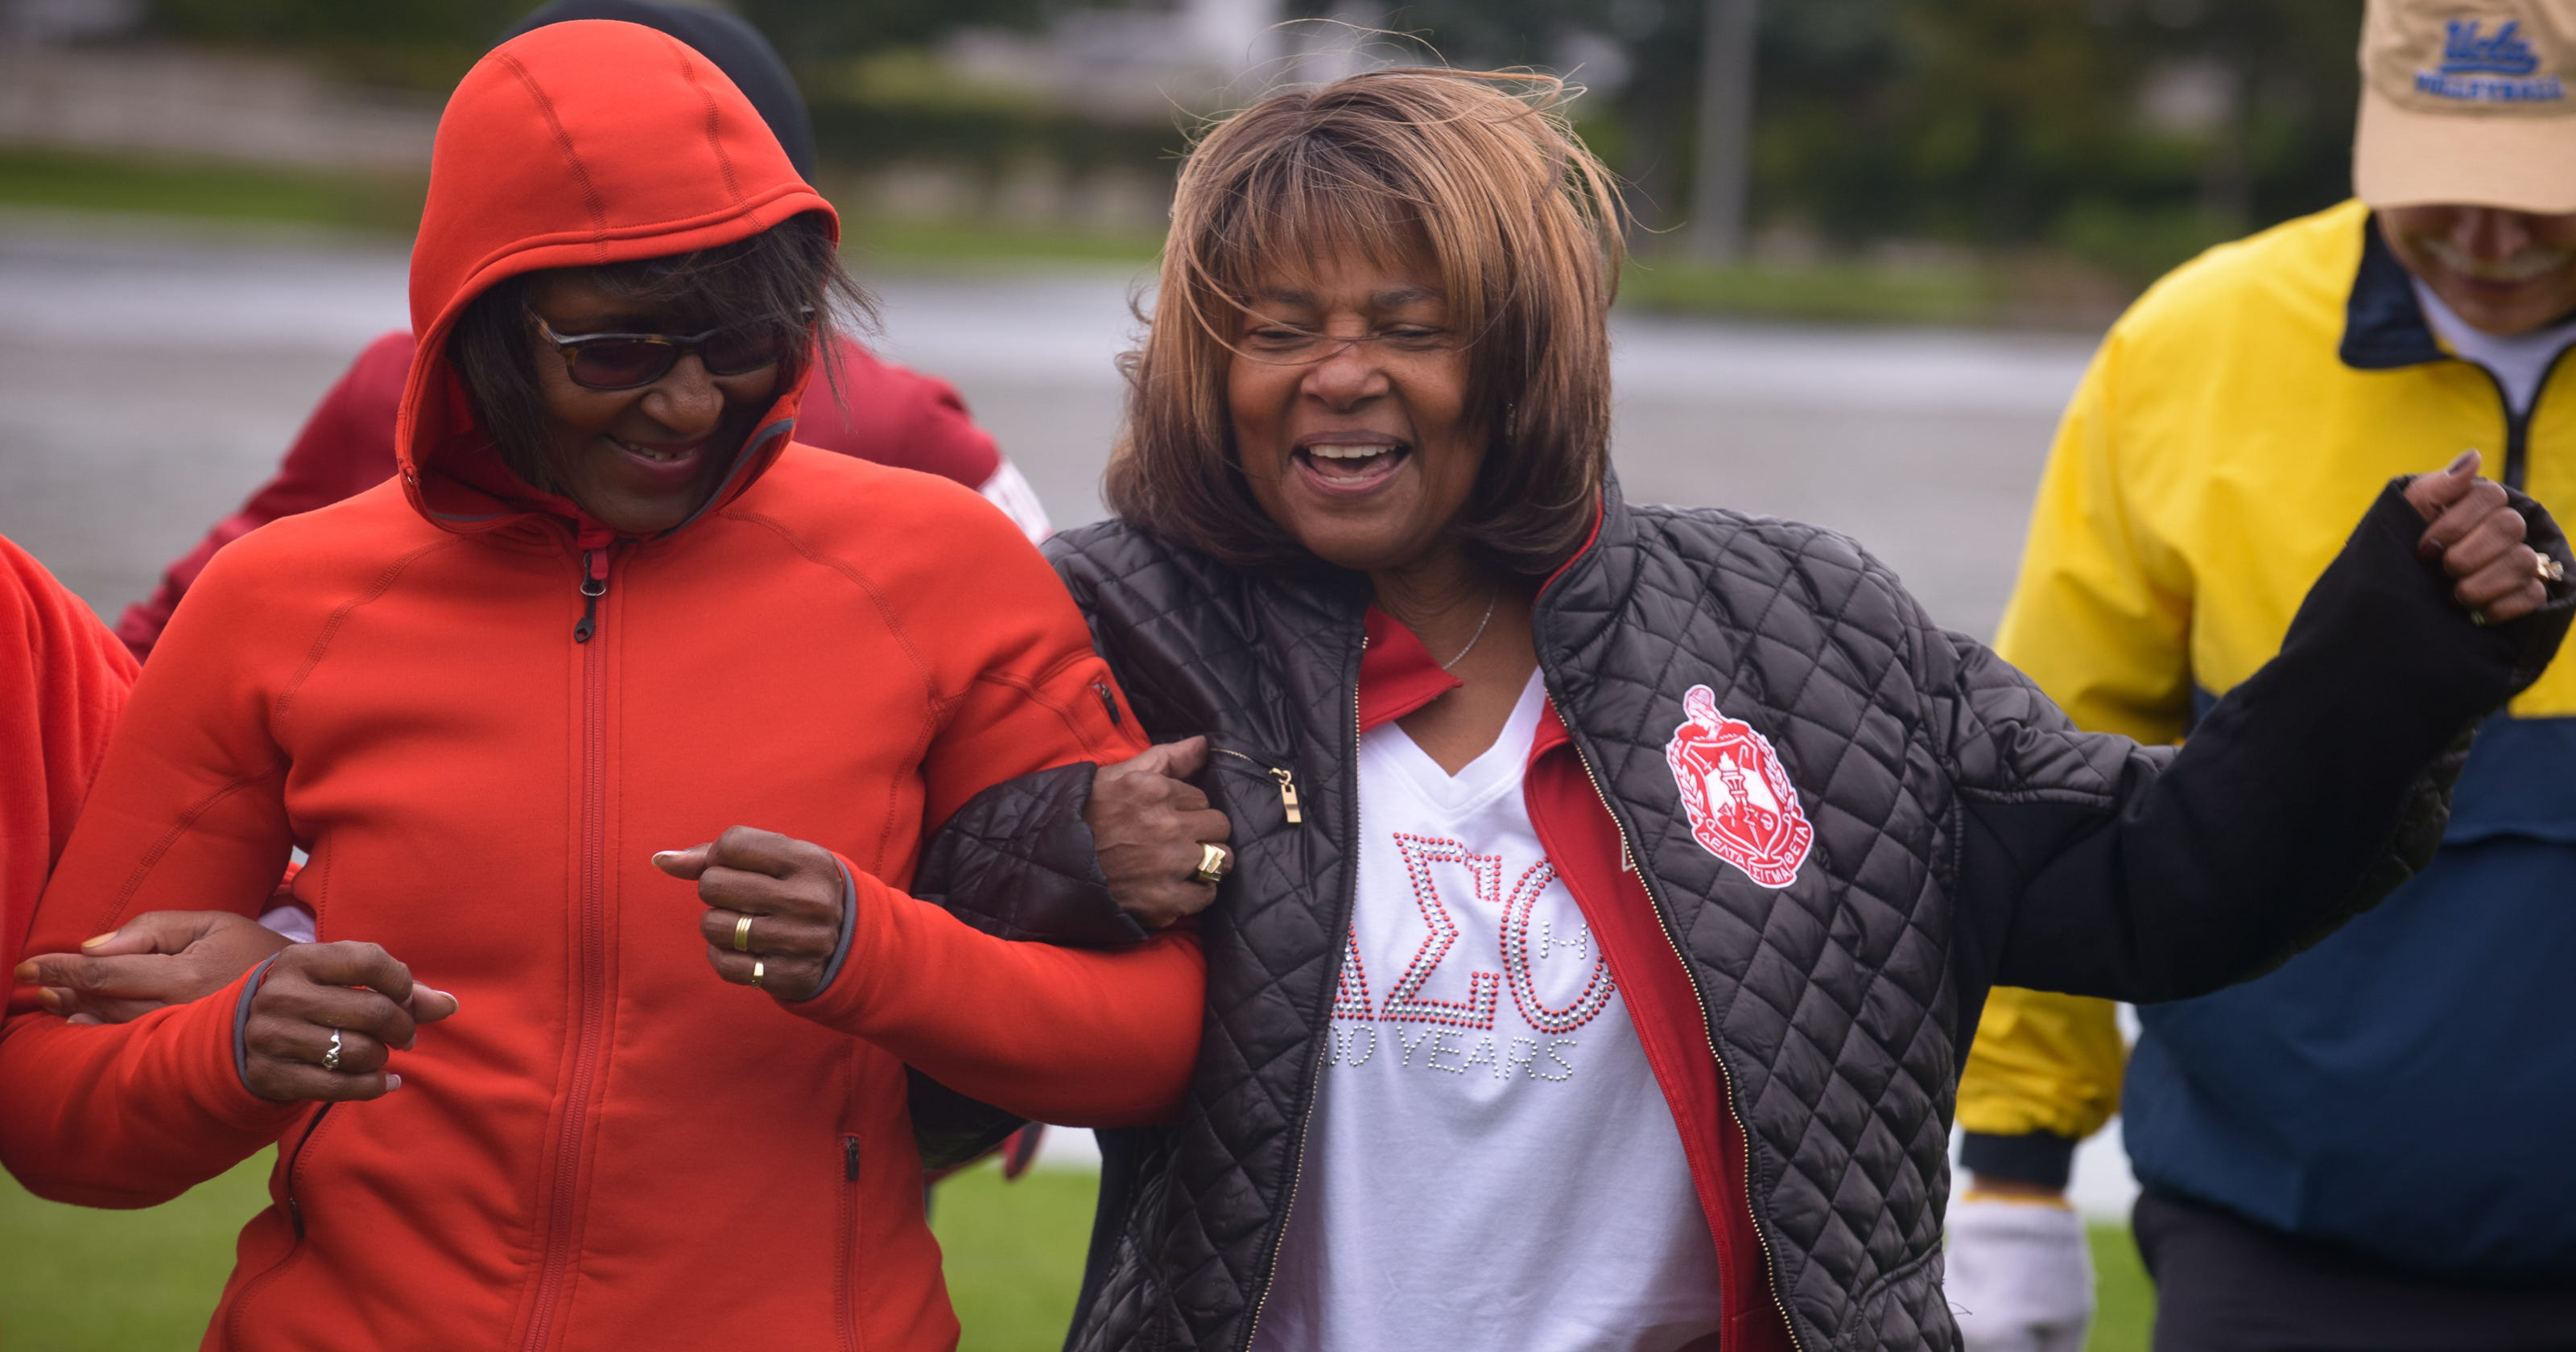 DELTA SIGMA THETA TRACK JACKET WITH LETTERS AND